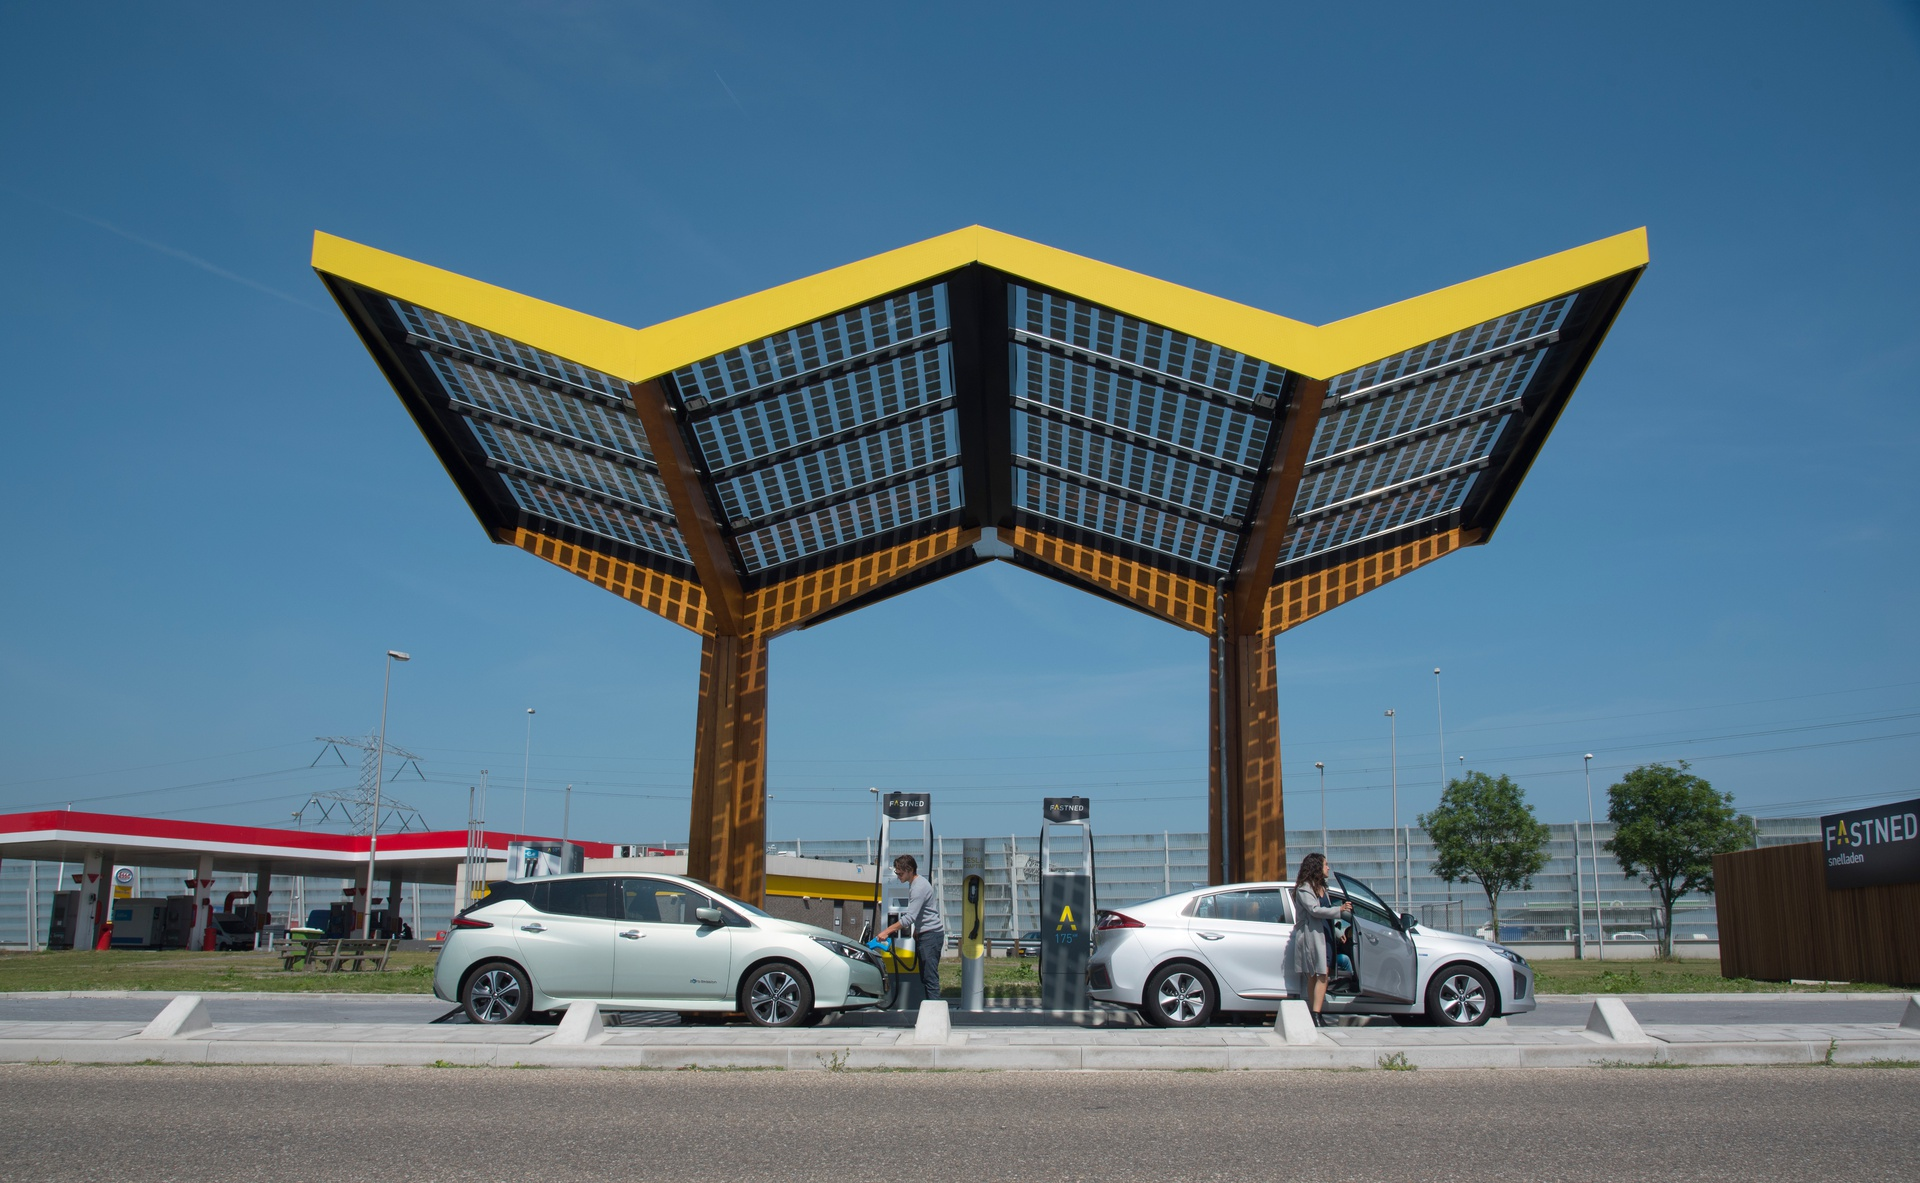 Fastned_fast charging station-De-Watering-iOniq-Leaf-people.jpg